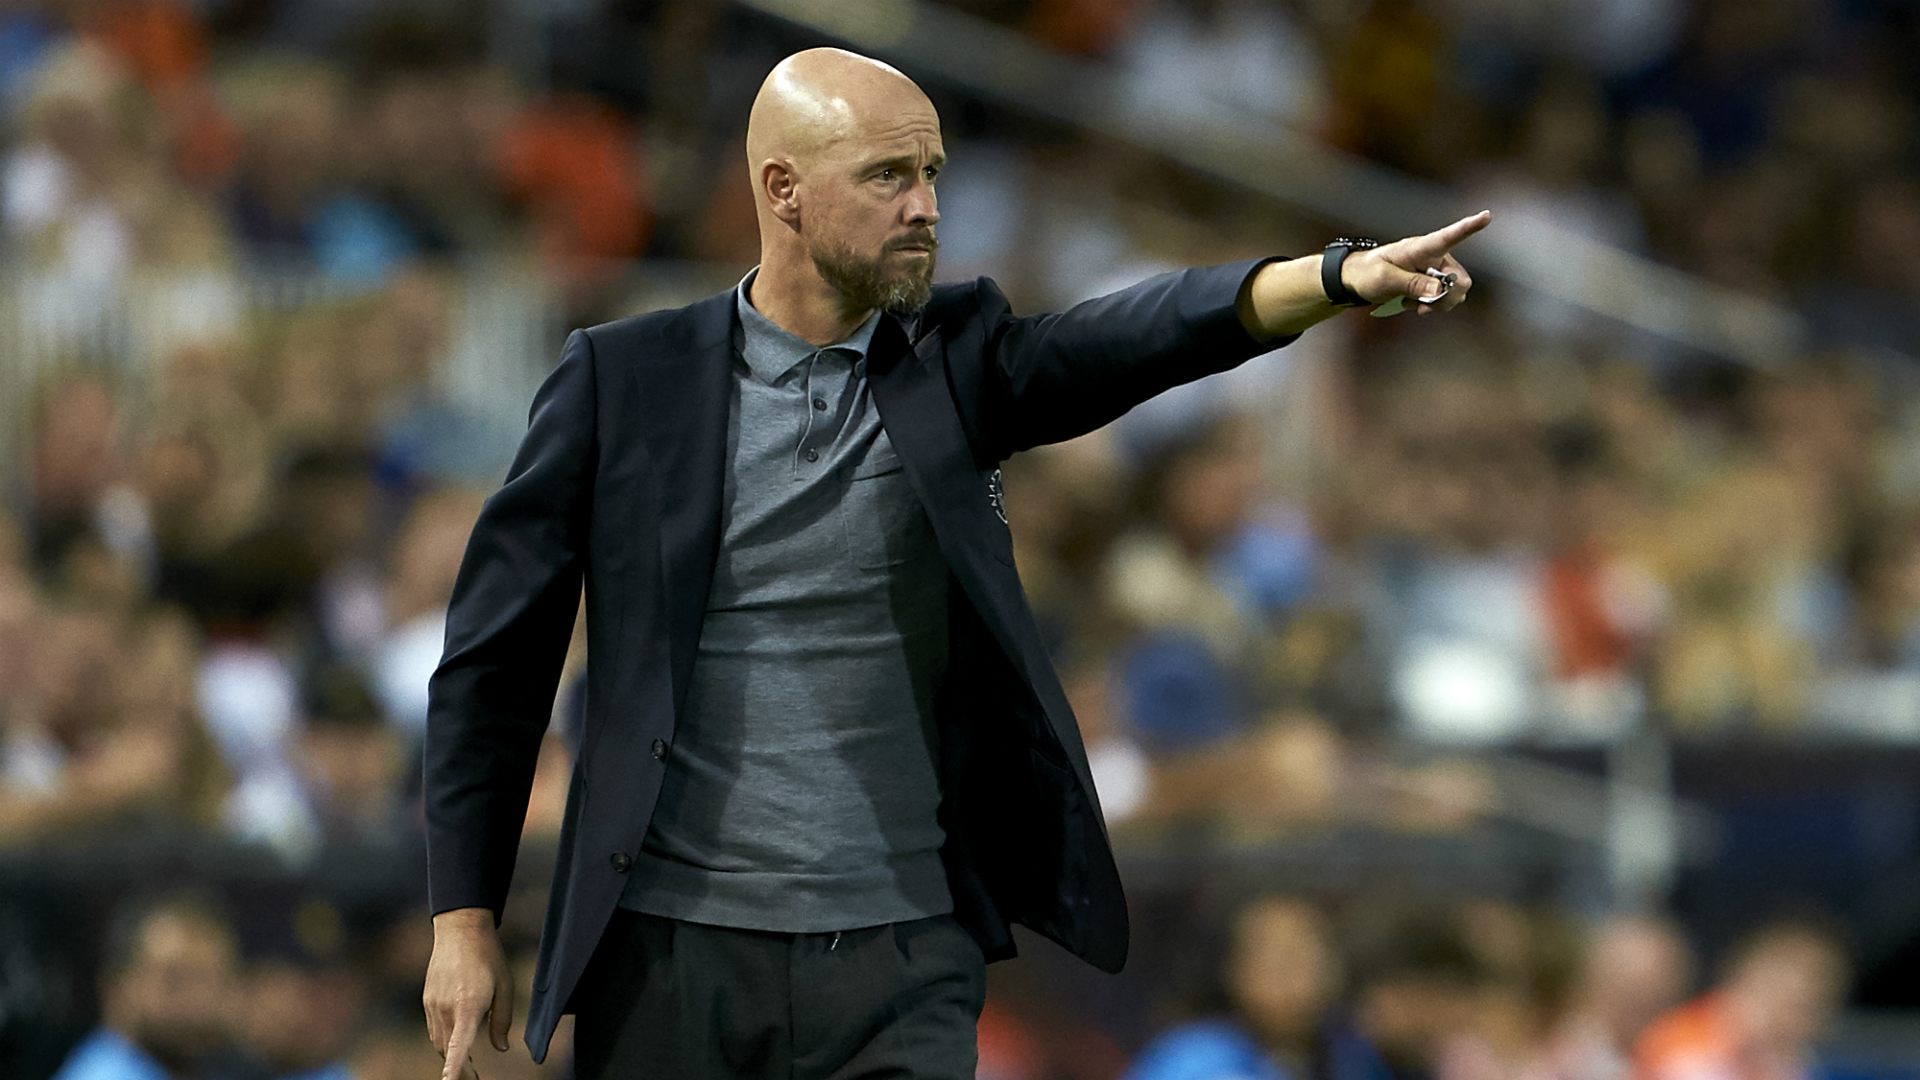 Ten Hag: Ajax were sloppy